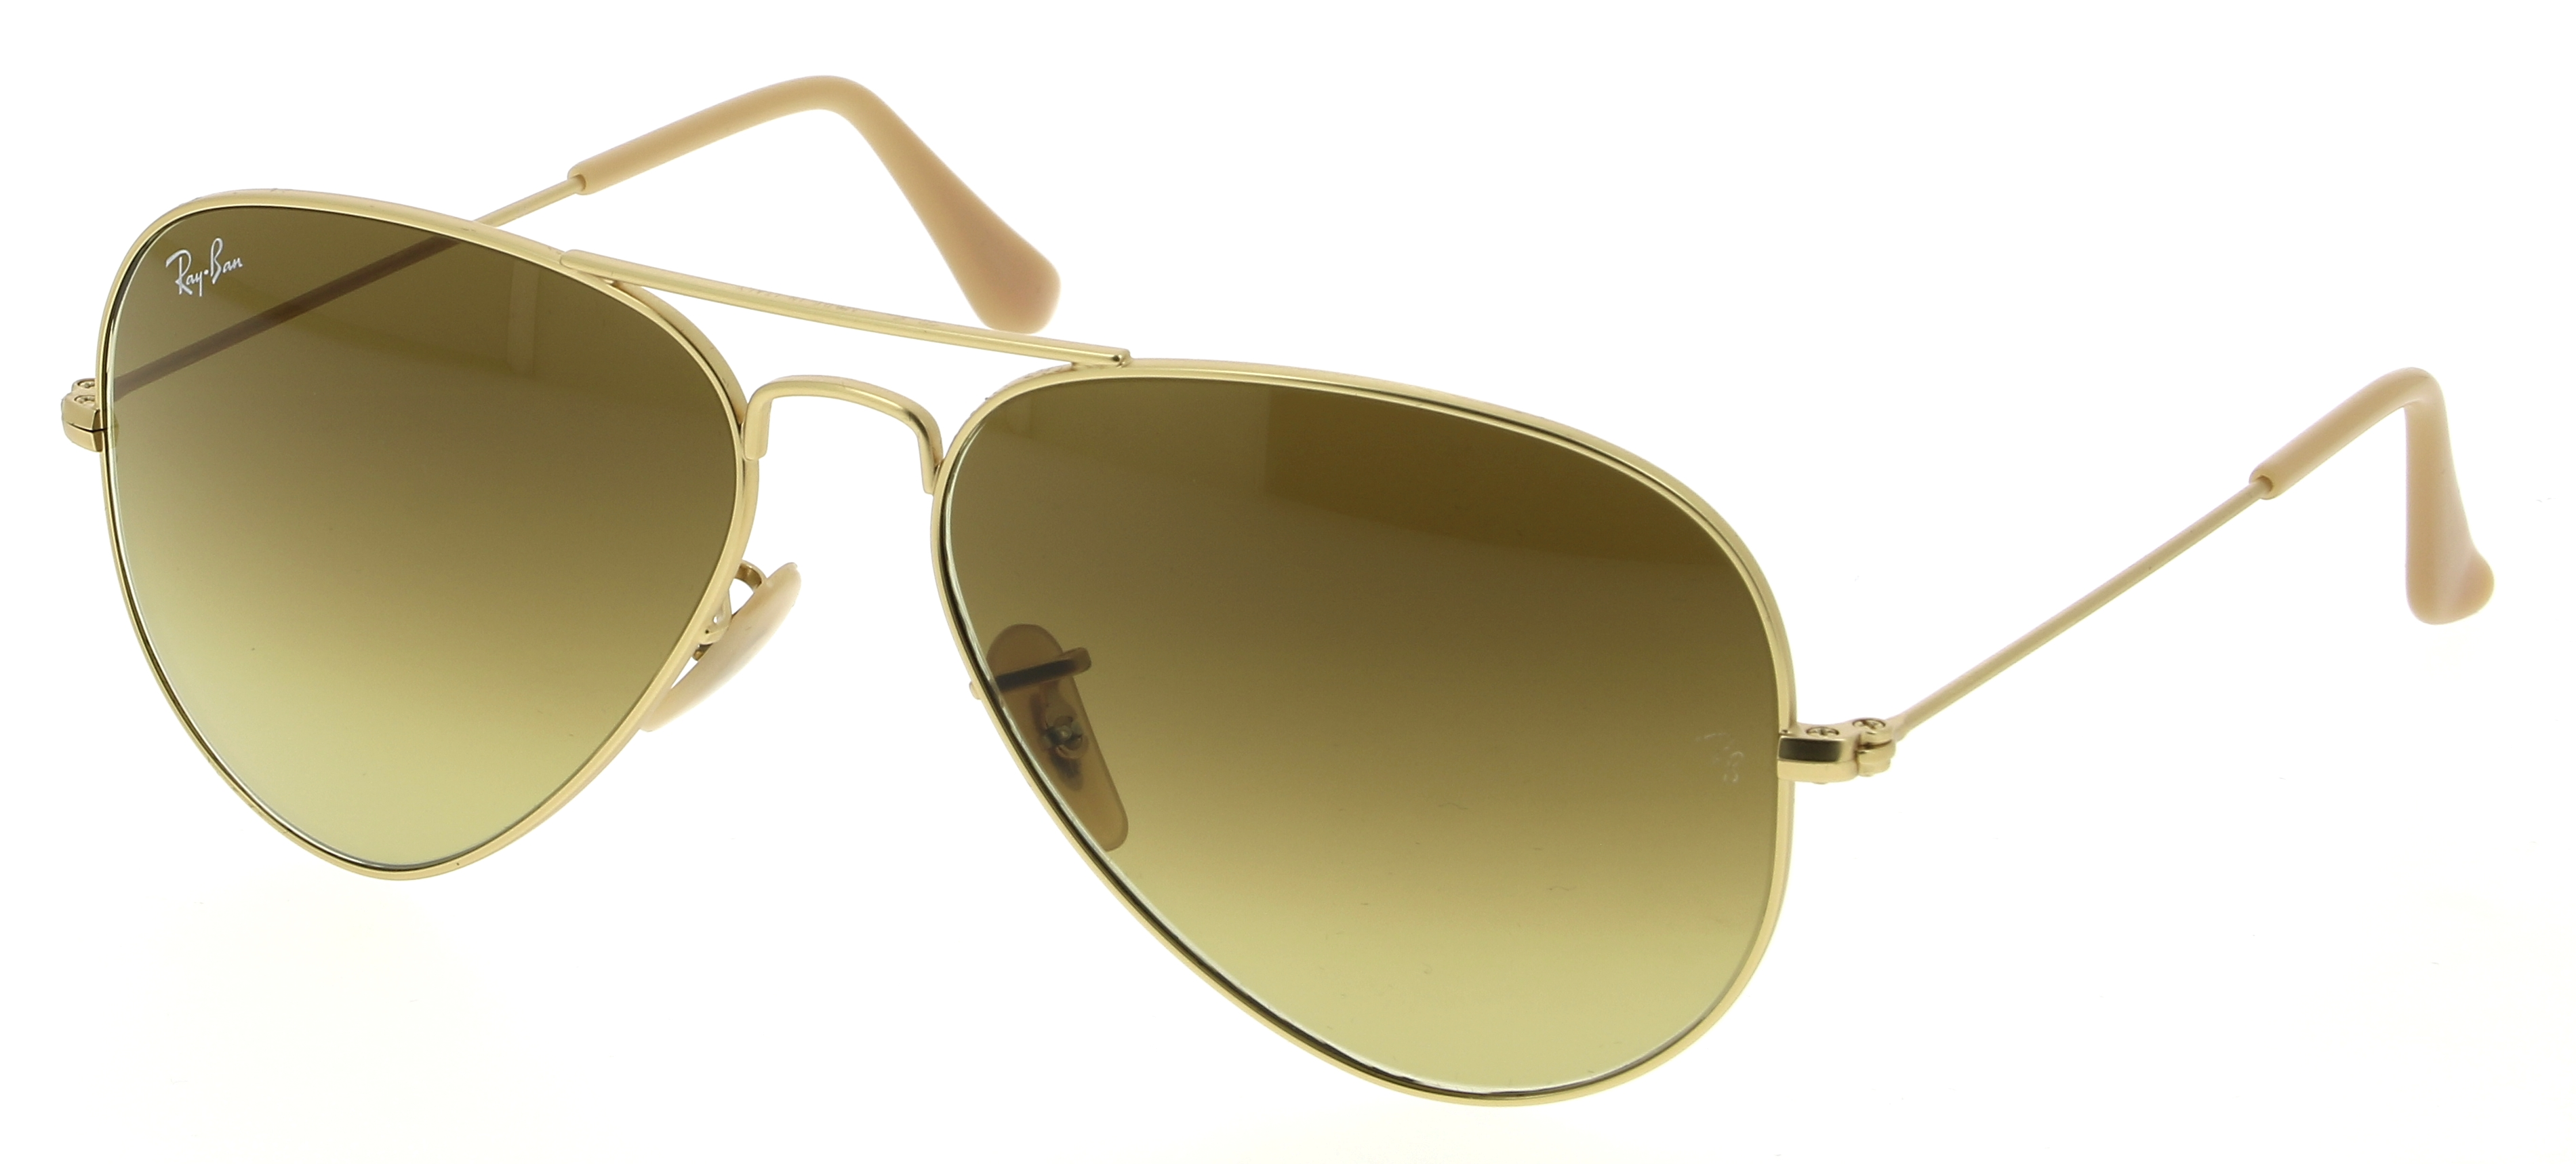 Ray Ban Femme Optical Center « Heritage Malta 31c93867cb4e